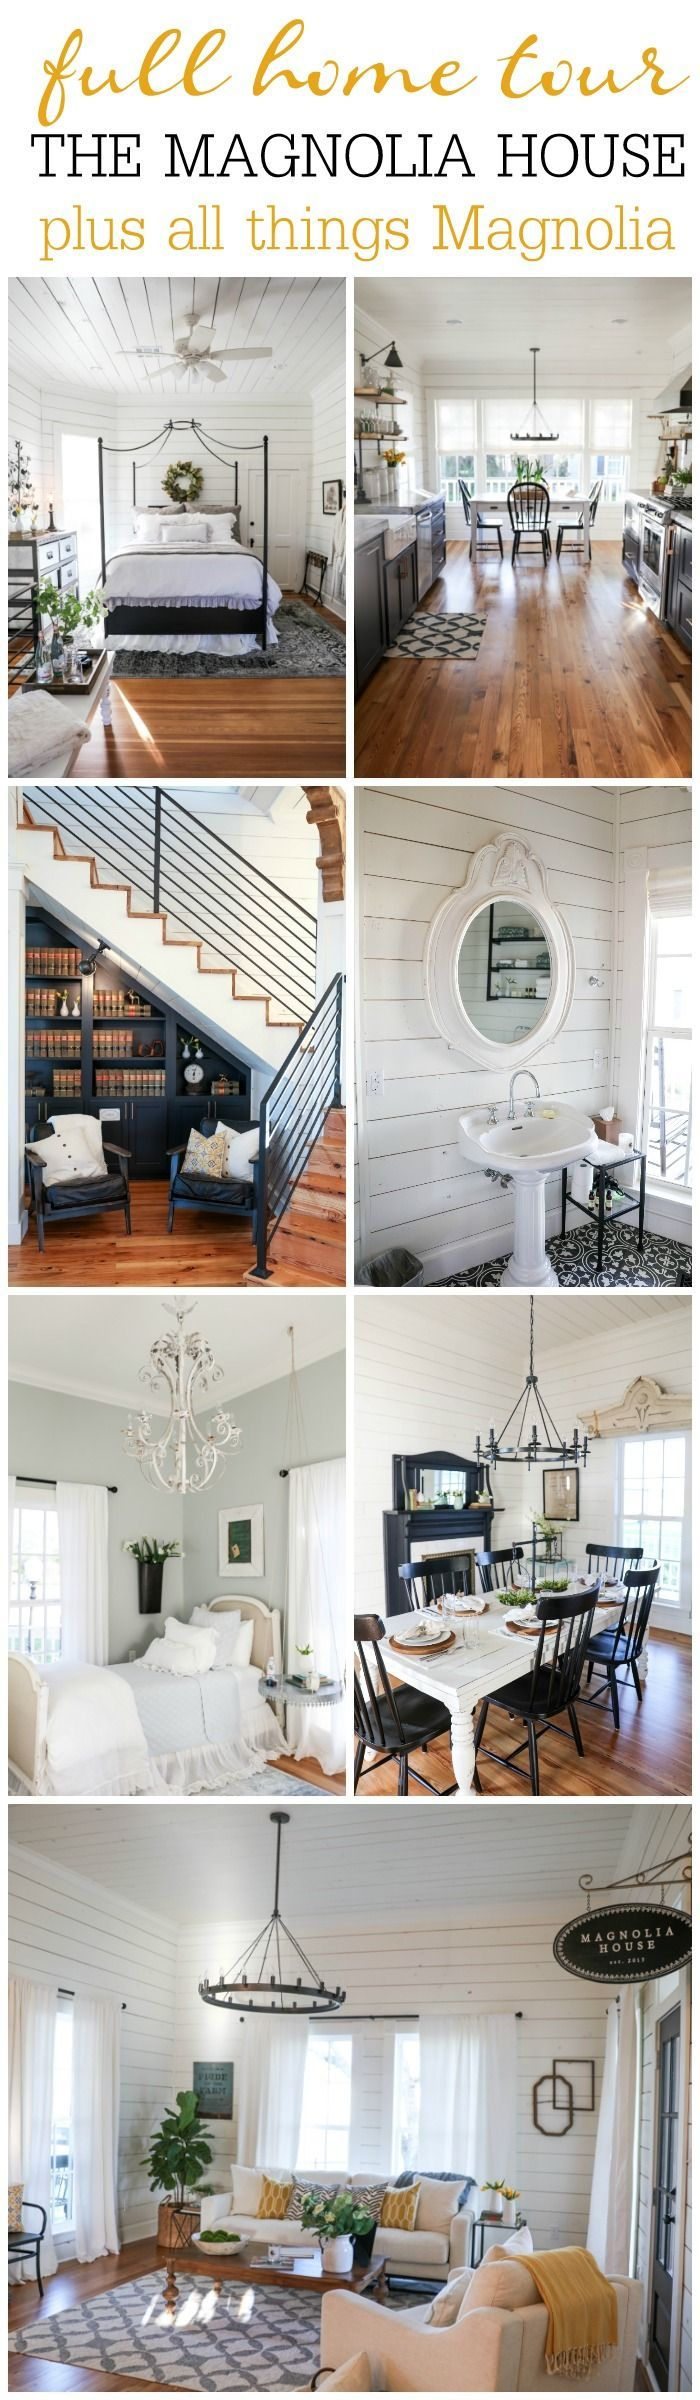 Best 20 Magnolia Homes Ideas On Pinterest Magnolia Hgtv